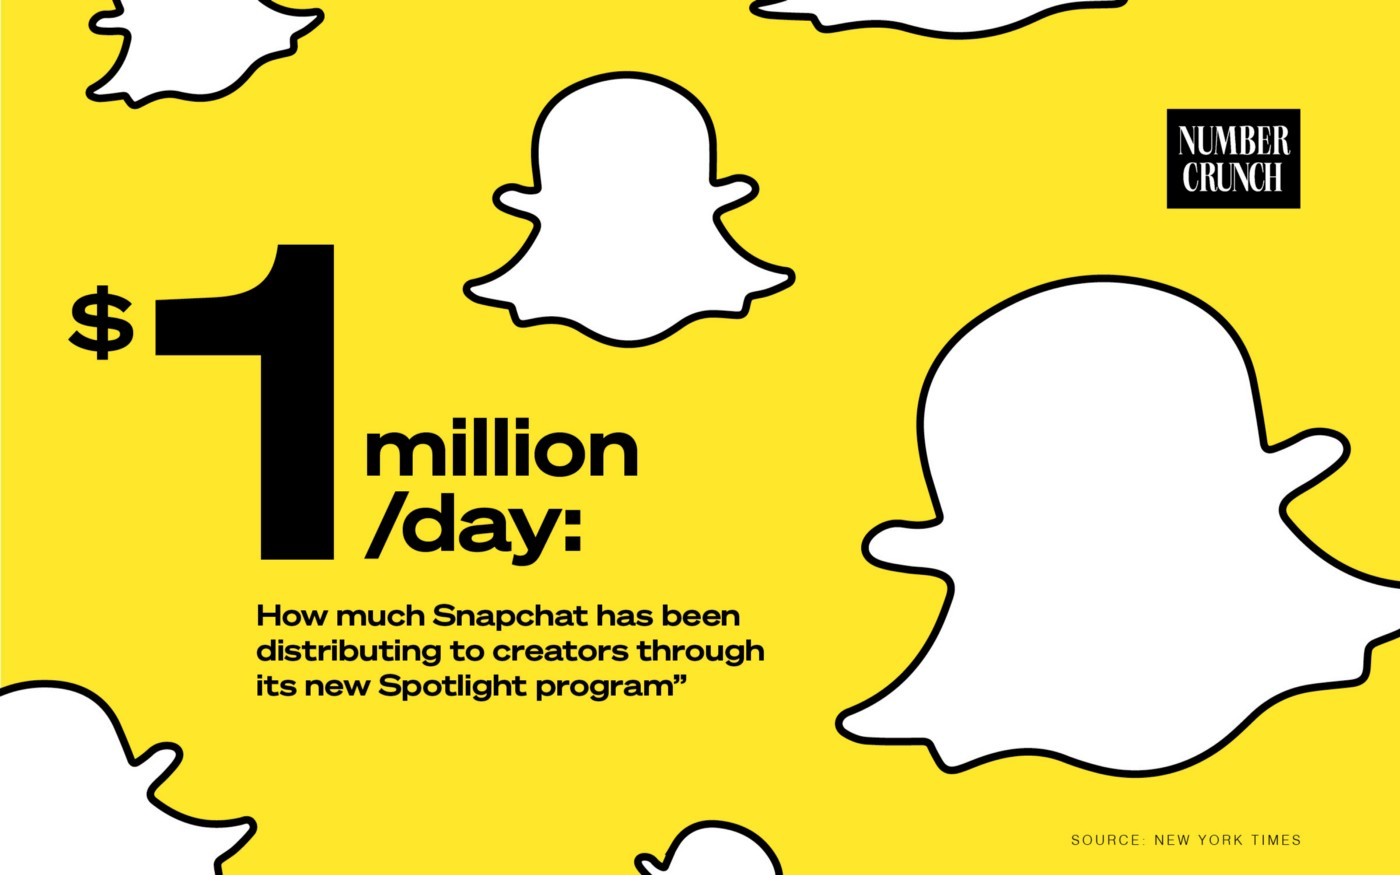 $1 million/day: How much Snapchat has been distributing to creators through its new Spotlight program